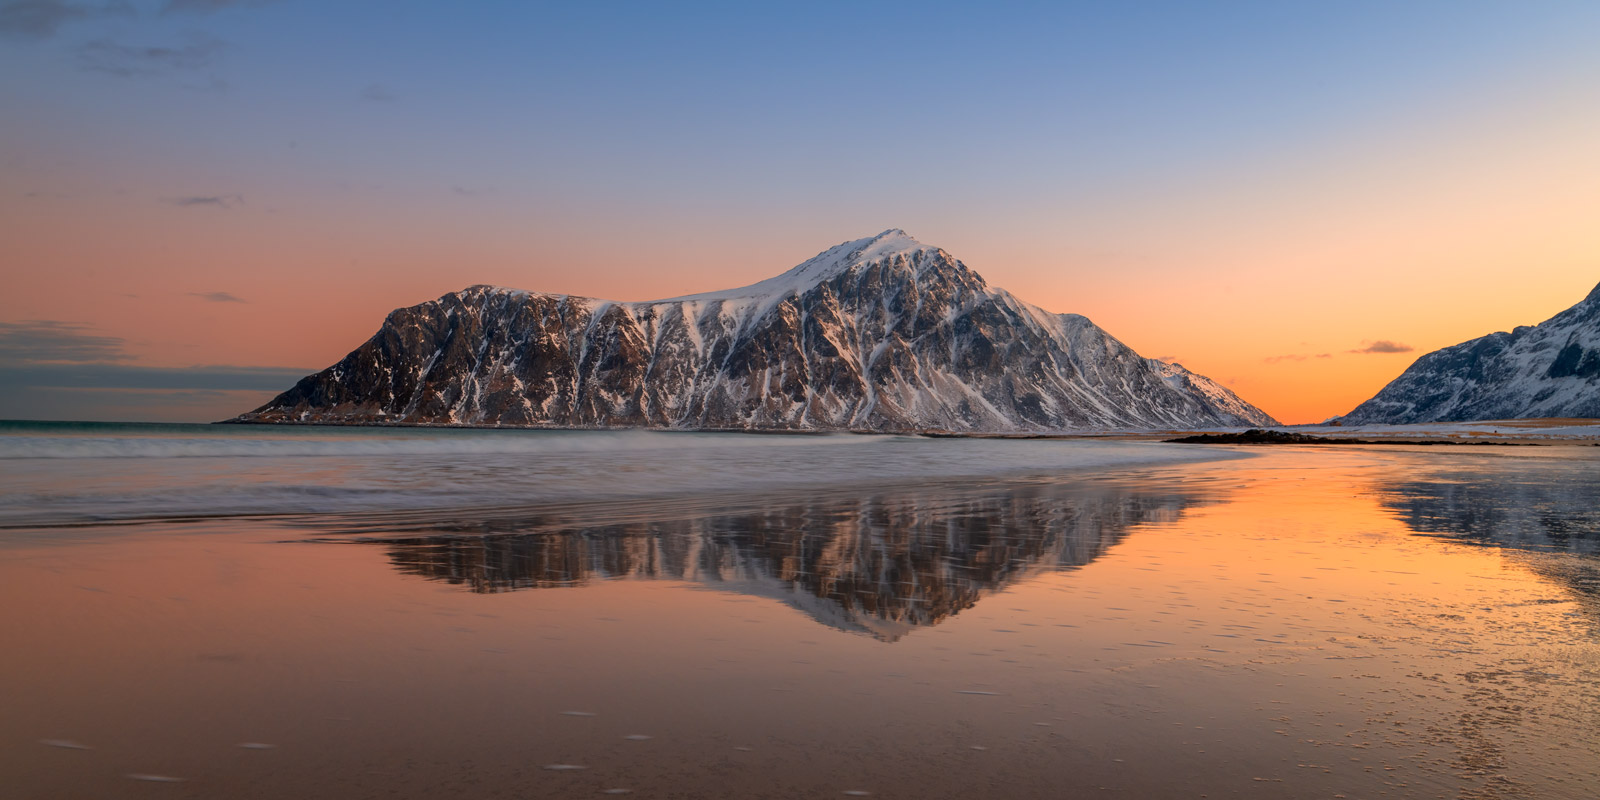 Norway, Lofoten, Skagsanden, sunrise, reflection